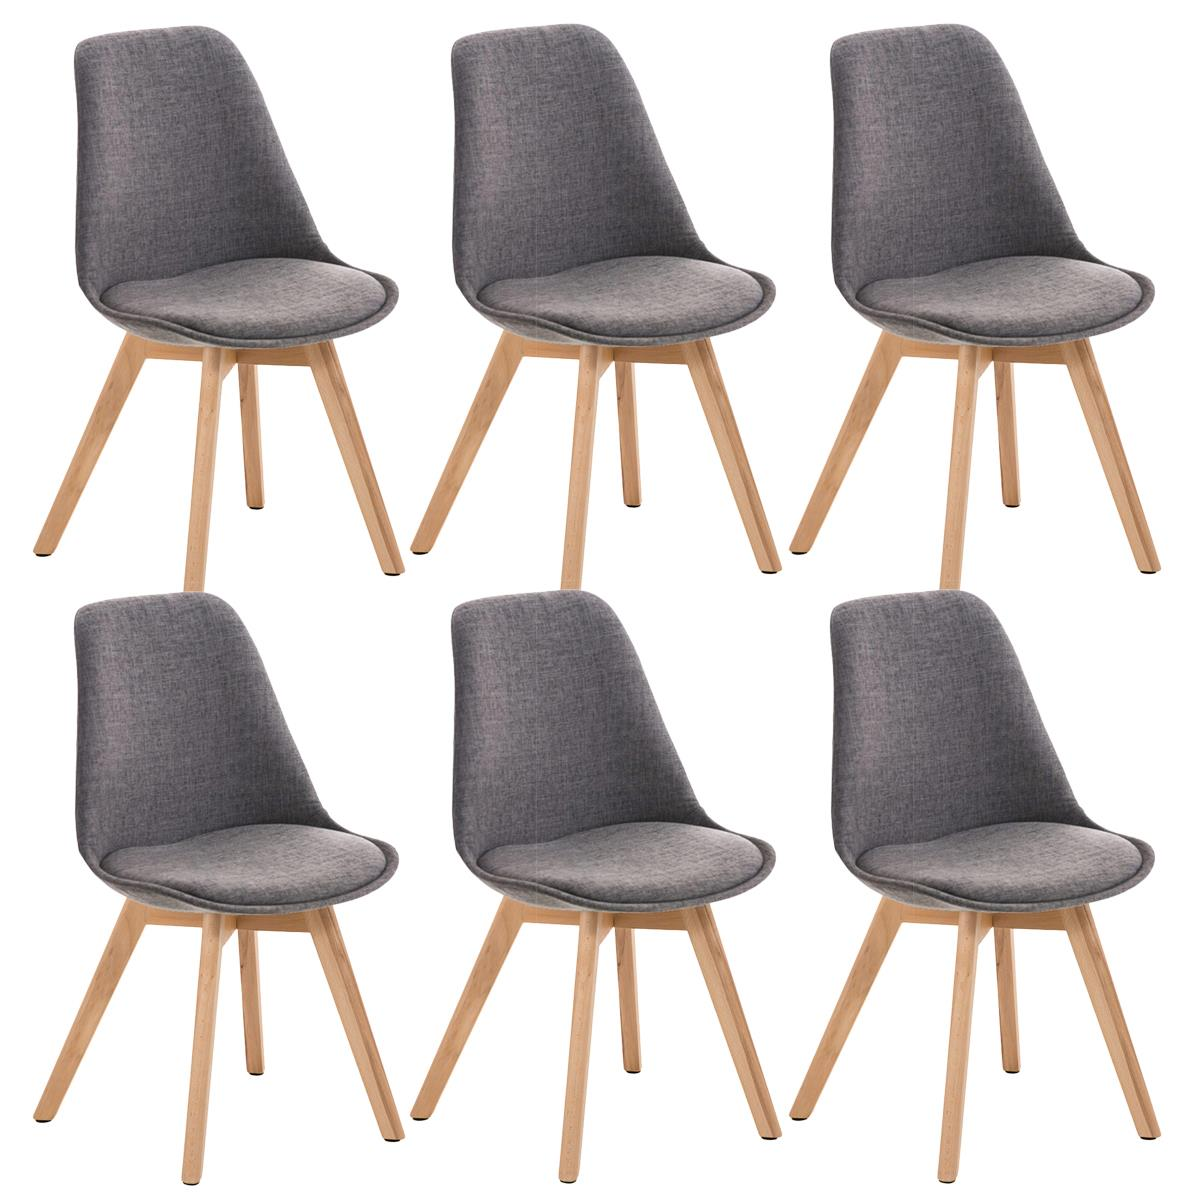 Conjunto de 6 sillas de comedor loren tela color gris for Sillas de comedor color gris